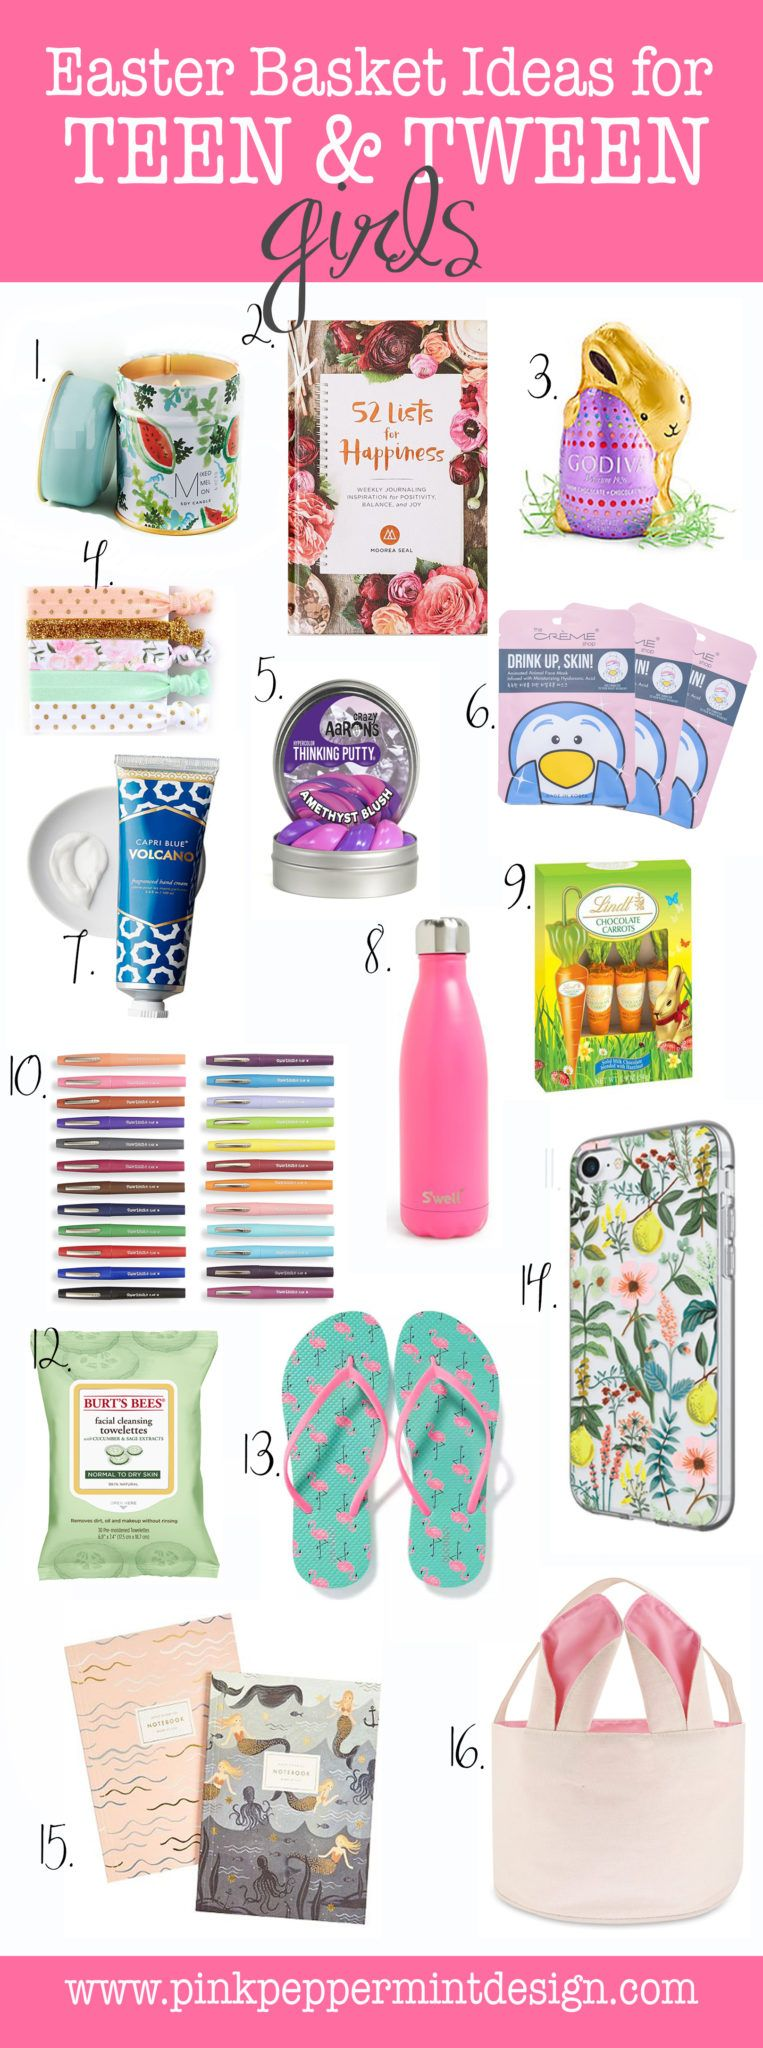 Teen girl easter basket idea gift ideas pinterest basket ideas teen girl easter basket idea gift ideas pinterest basket ideas easter baskets and easter negle Gallery